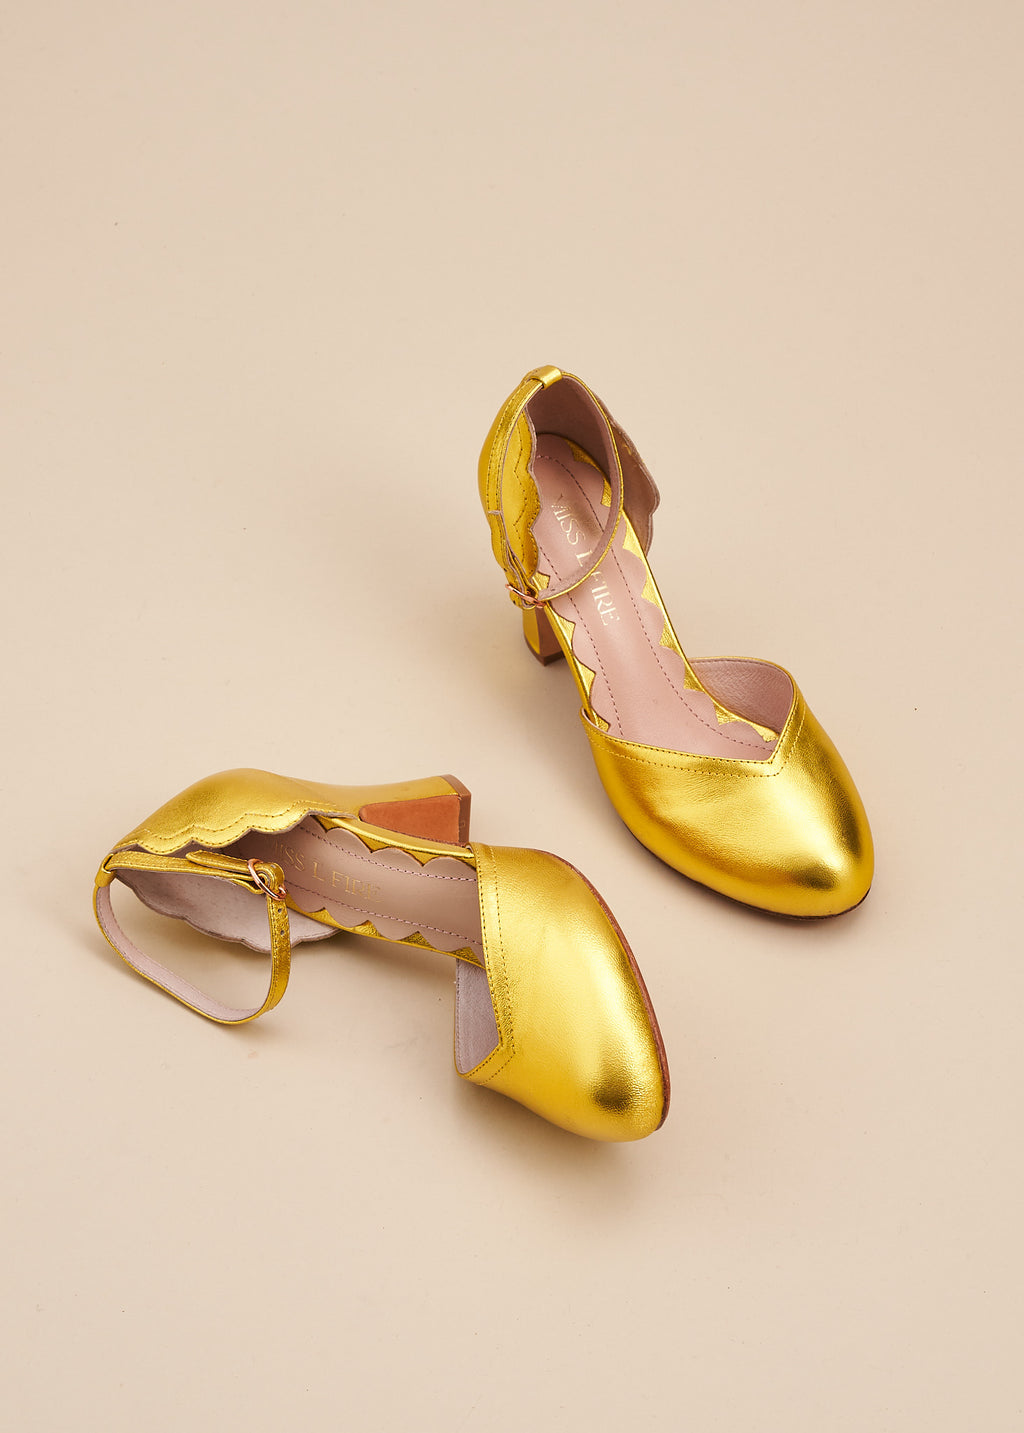 Layla, by Miss L Fire,  in luxurious gold metallic leather is our go-to, every day, vintage inspired two part bar shoe with 'v' shaped topline, adjustable ankle strap, 8cm curved heel and cute scalloped detail. Wear at home, or plan a future party. Either way, prepare to dance all night in this classic style.